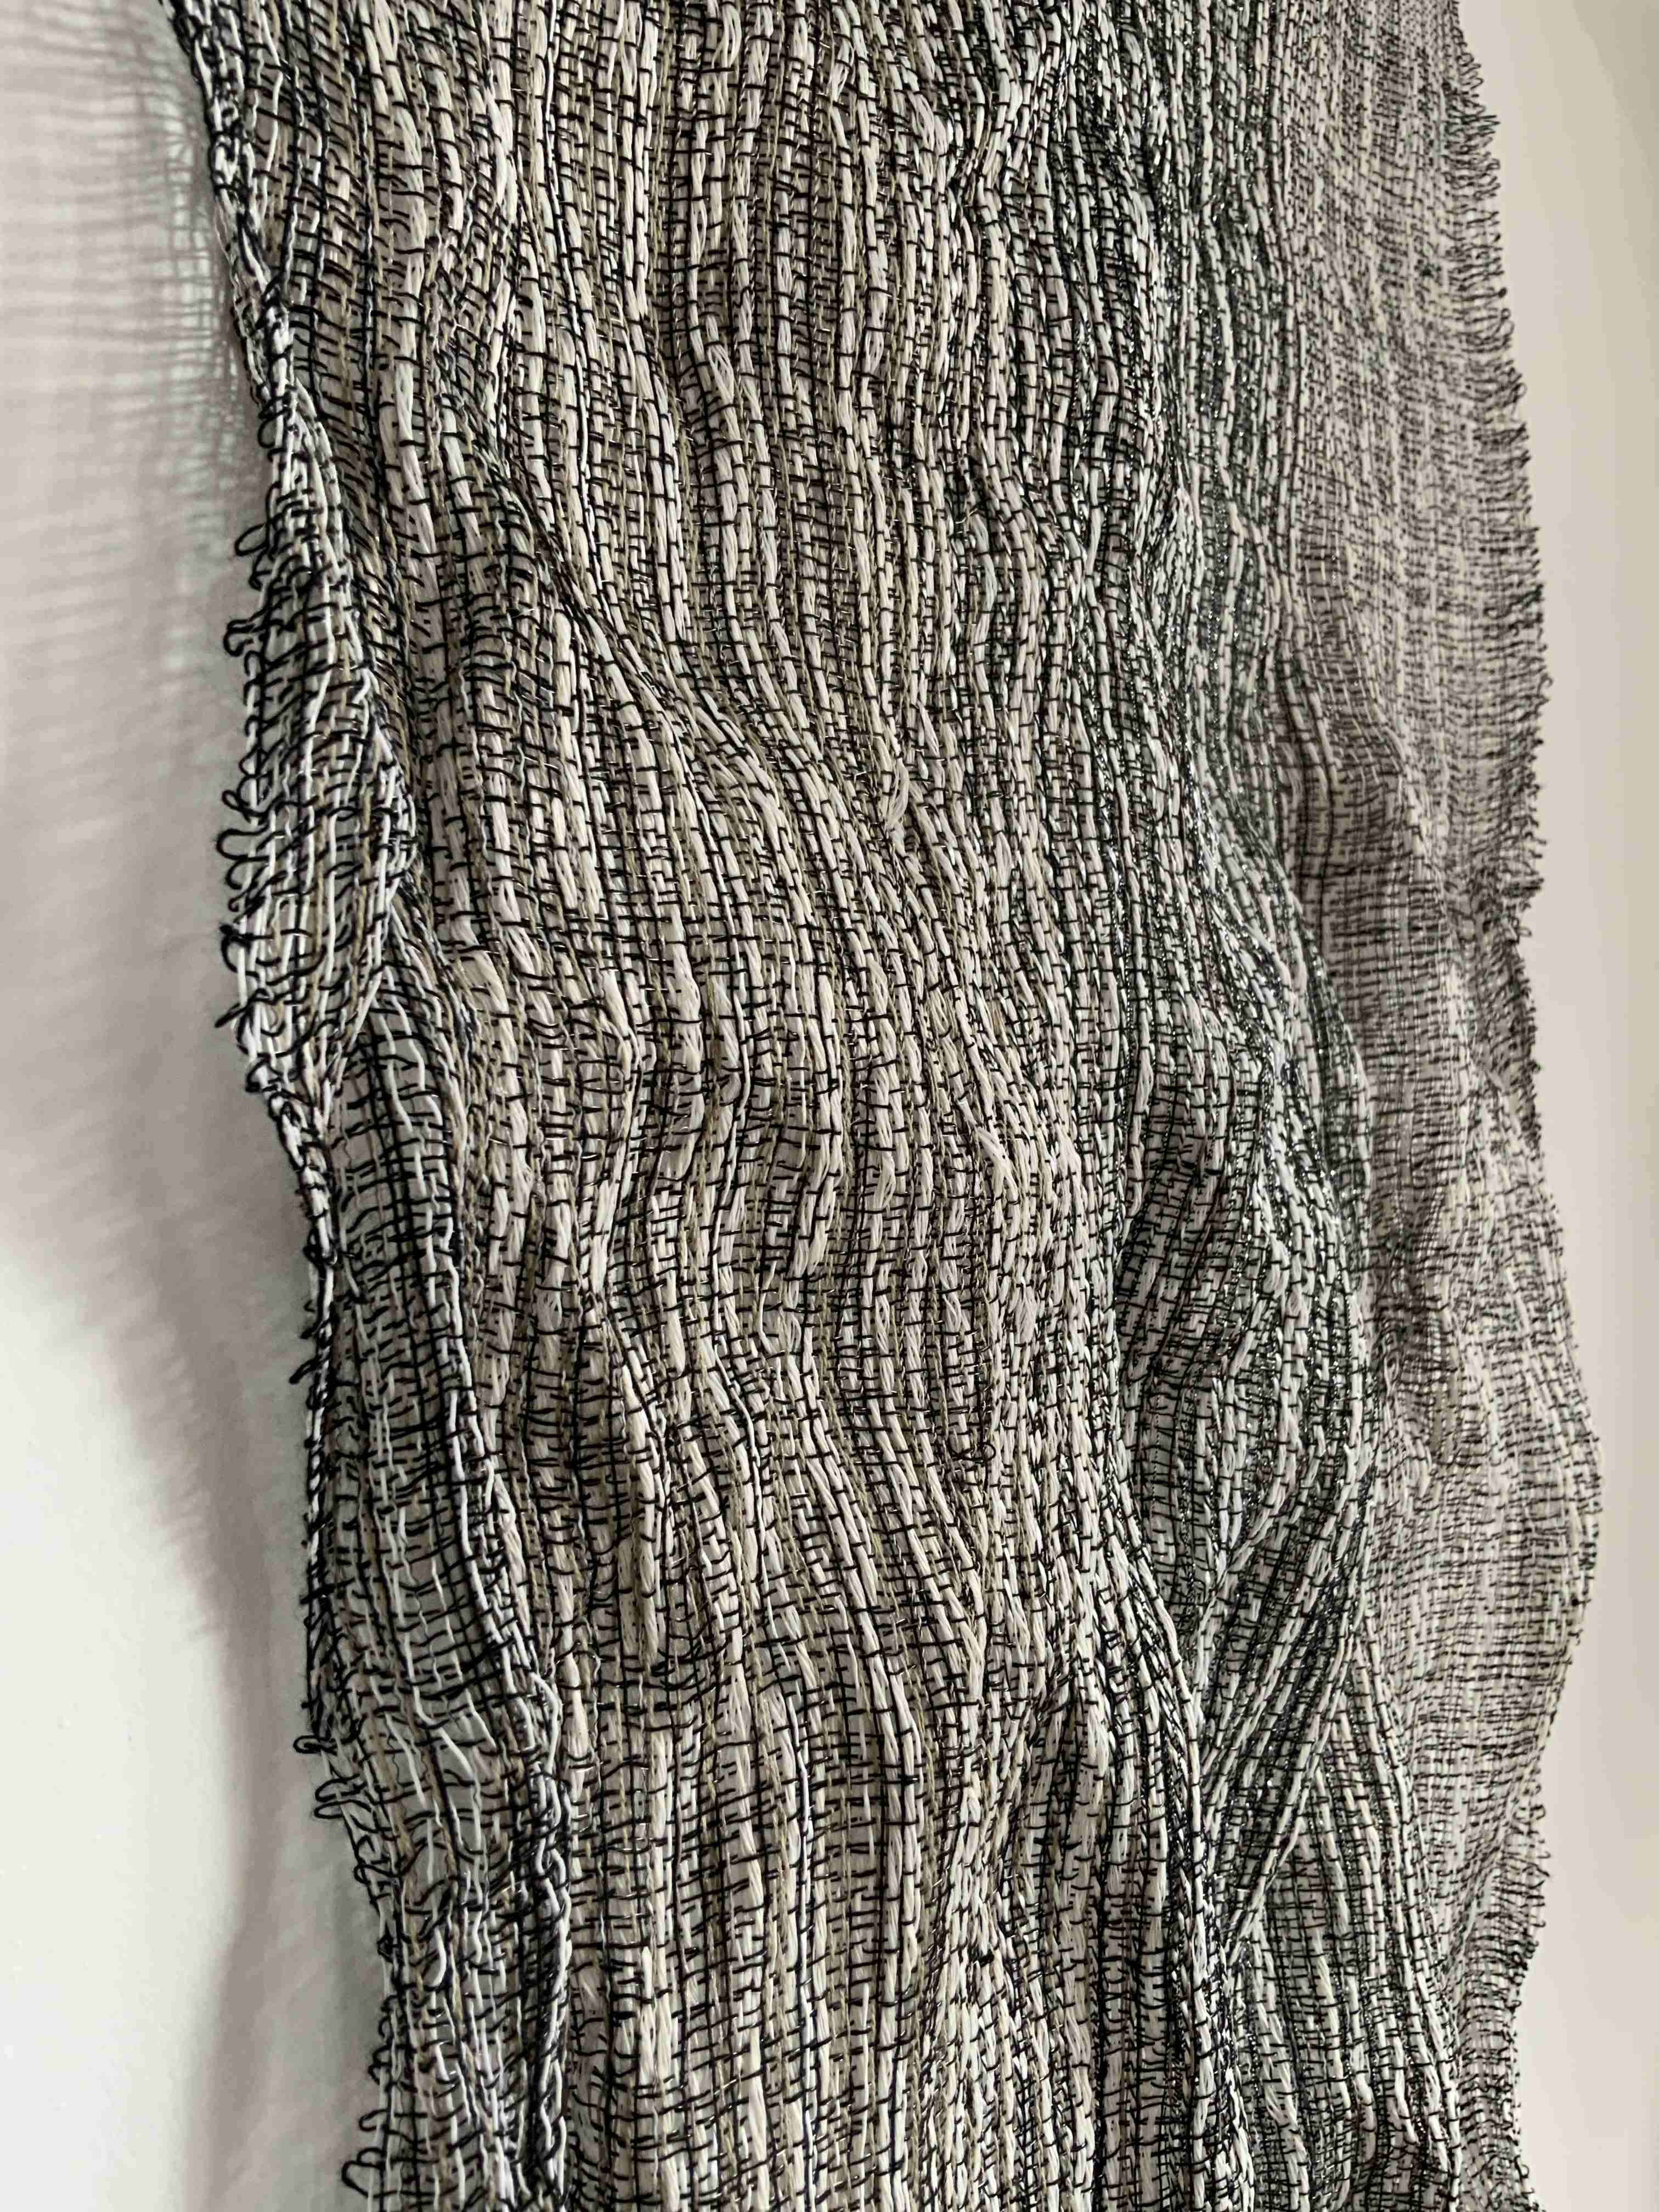 Handwoven metallic yarn